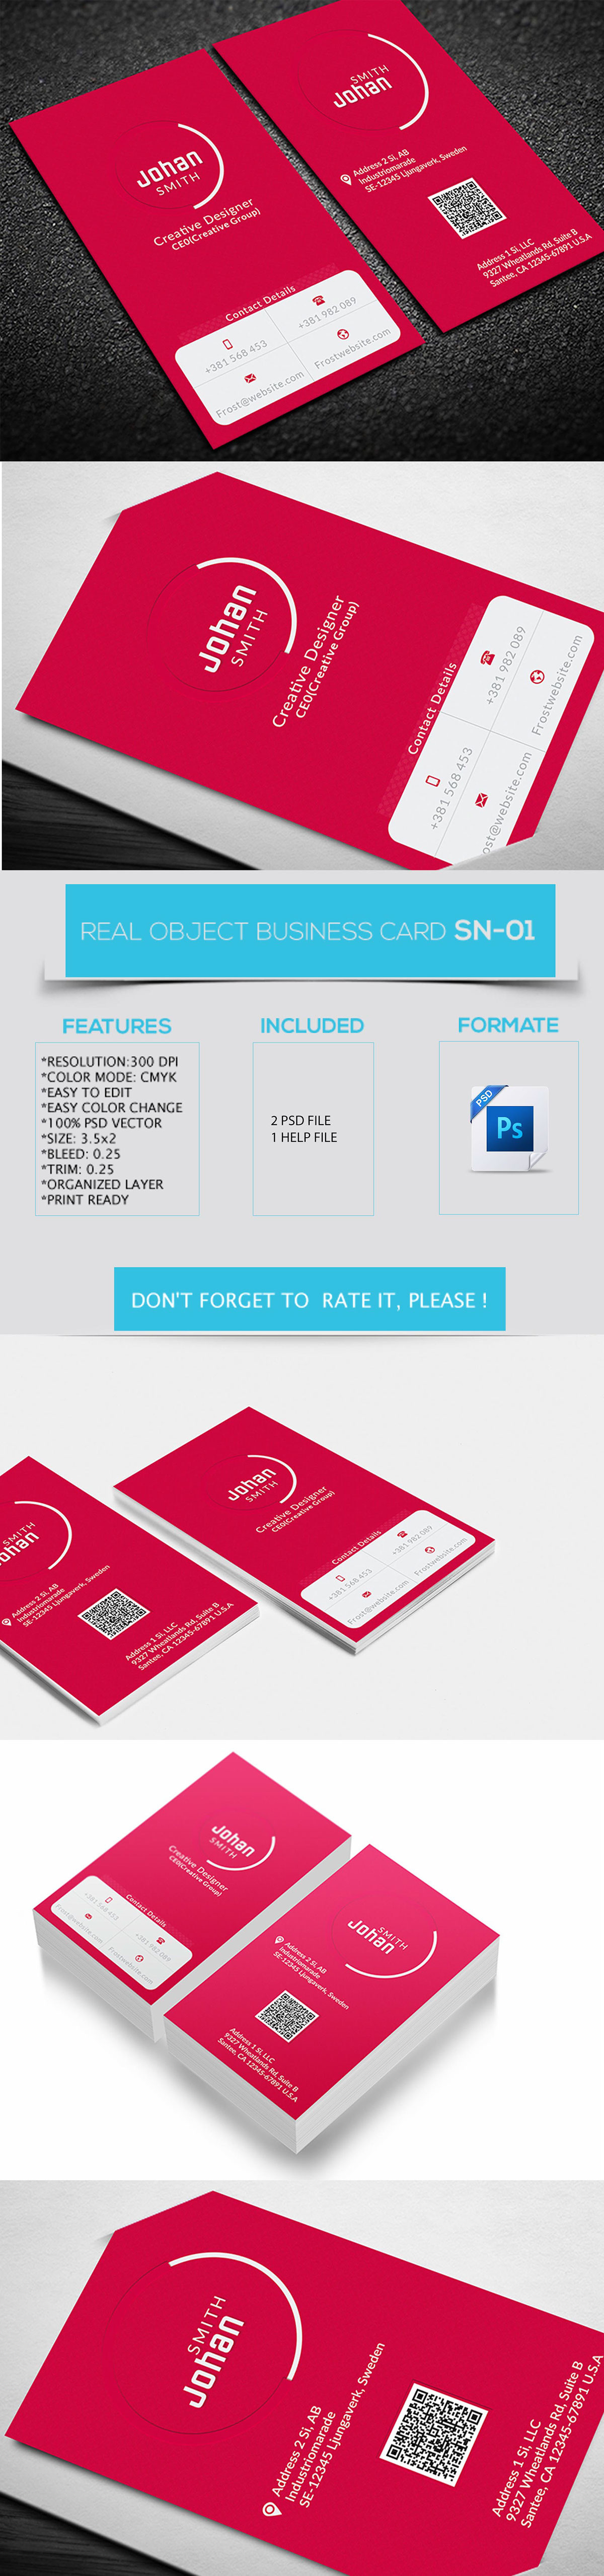 Fantastic business cards psd templates for free creative business fantastic business cards psd templates for free creative business card colourmoves